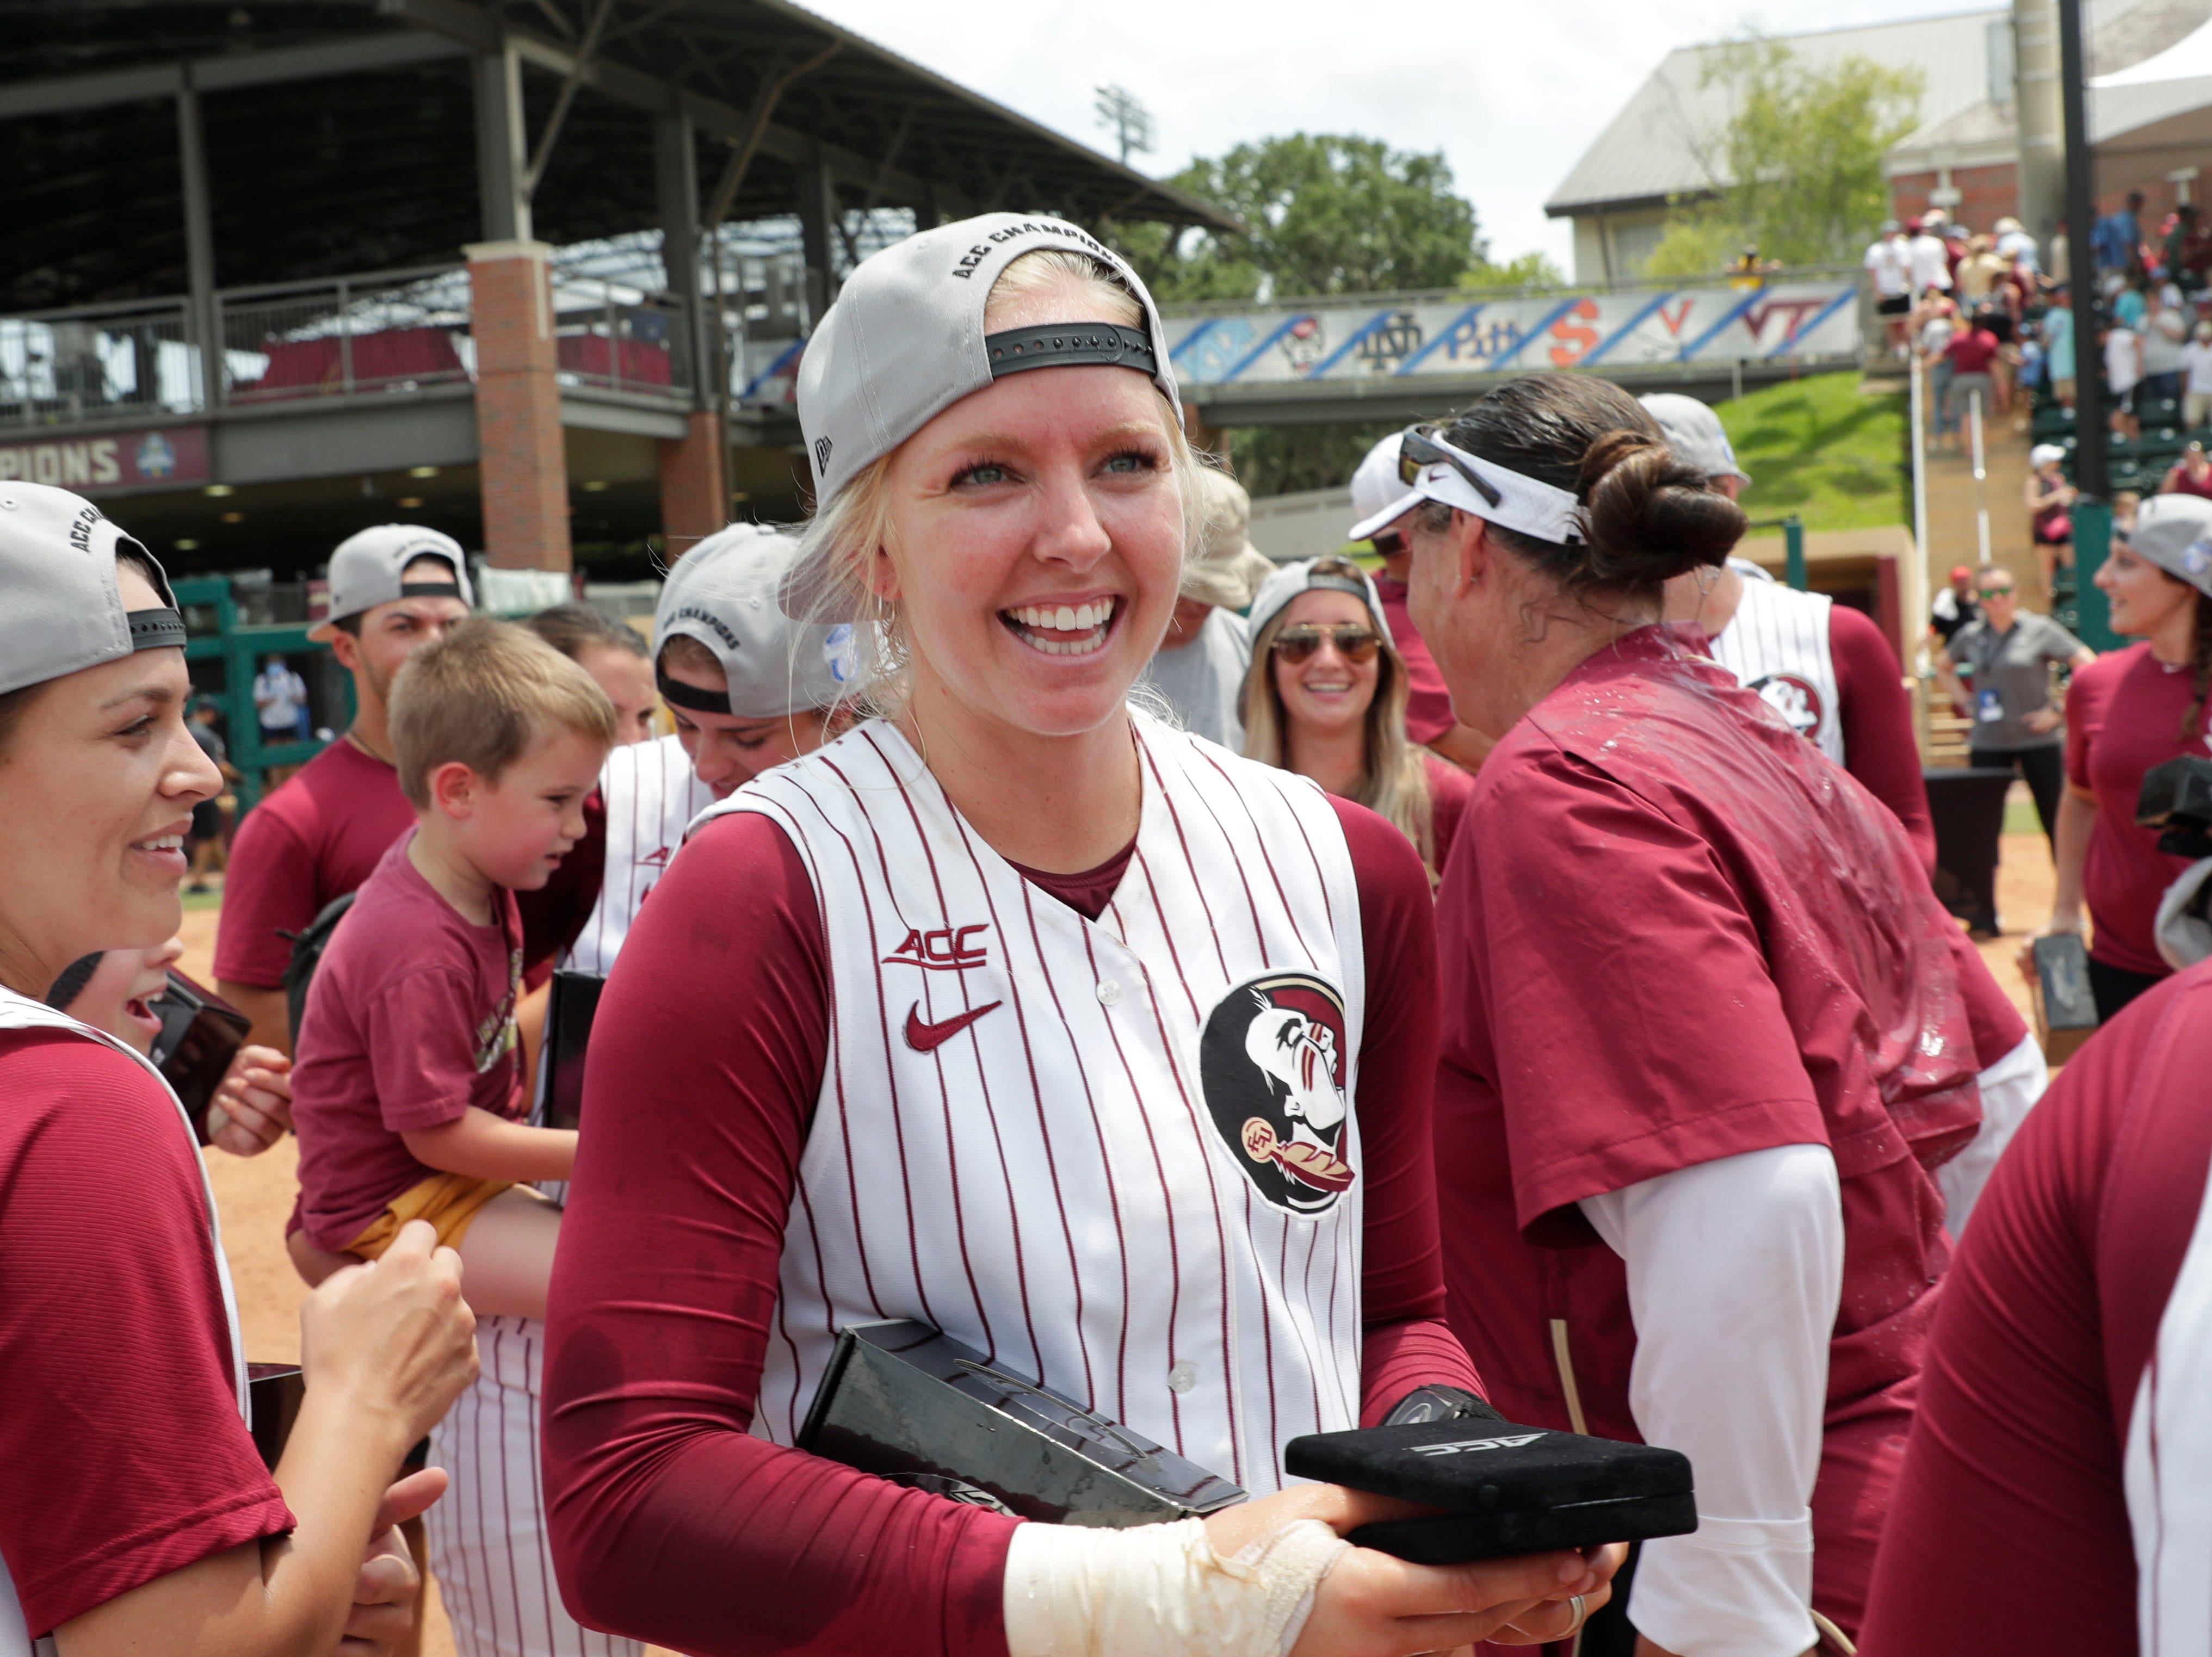 Florida State Seminoles utility player Sydney Sherrill (24) smiles as she takes it all in. The Florida State Seminoles celebrate their victory over the UNC Tar Heels for the ACC Softball Championship title Saturday, May 11, 2019.